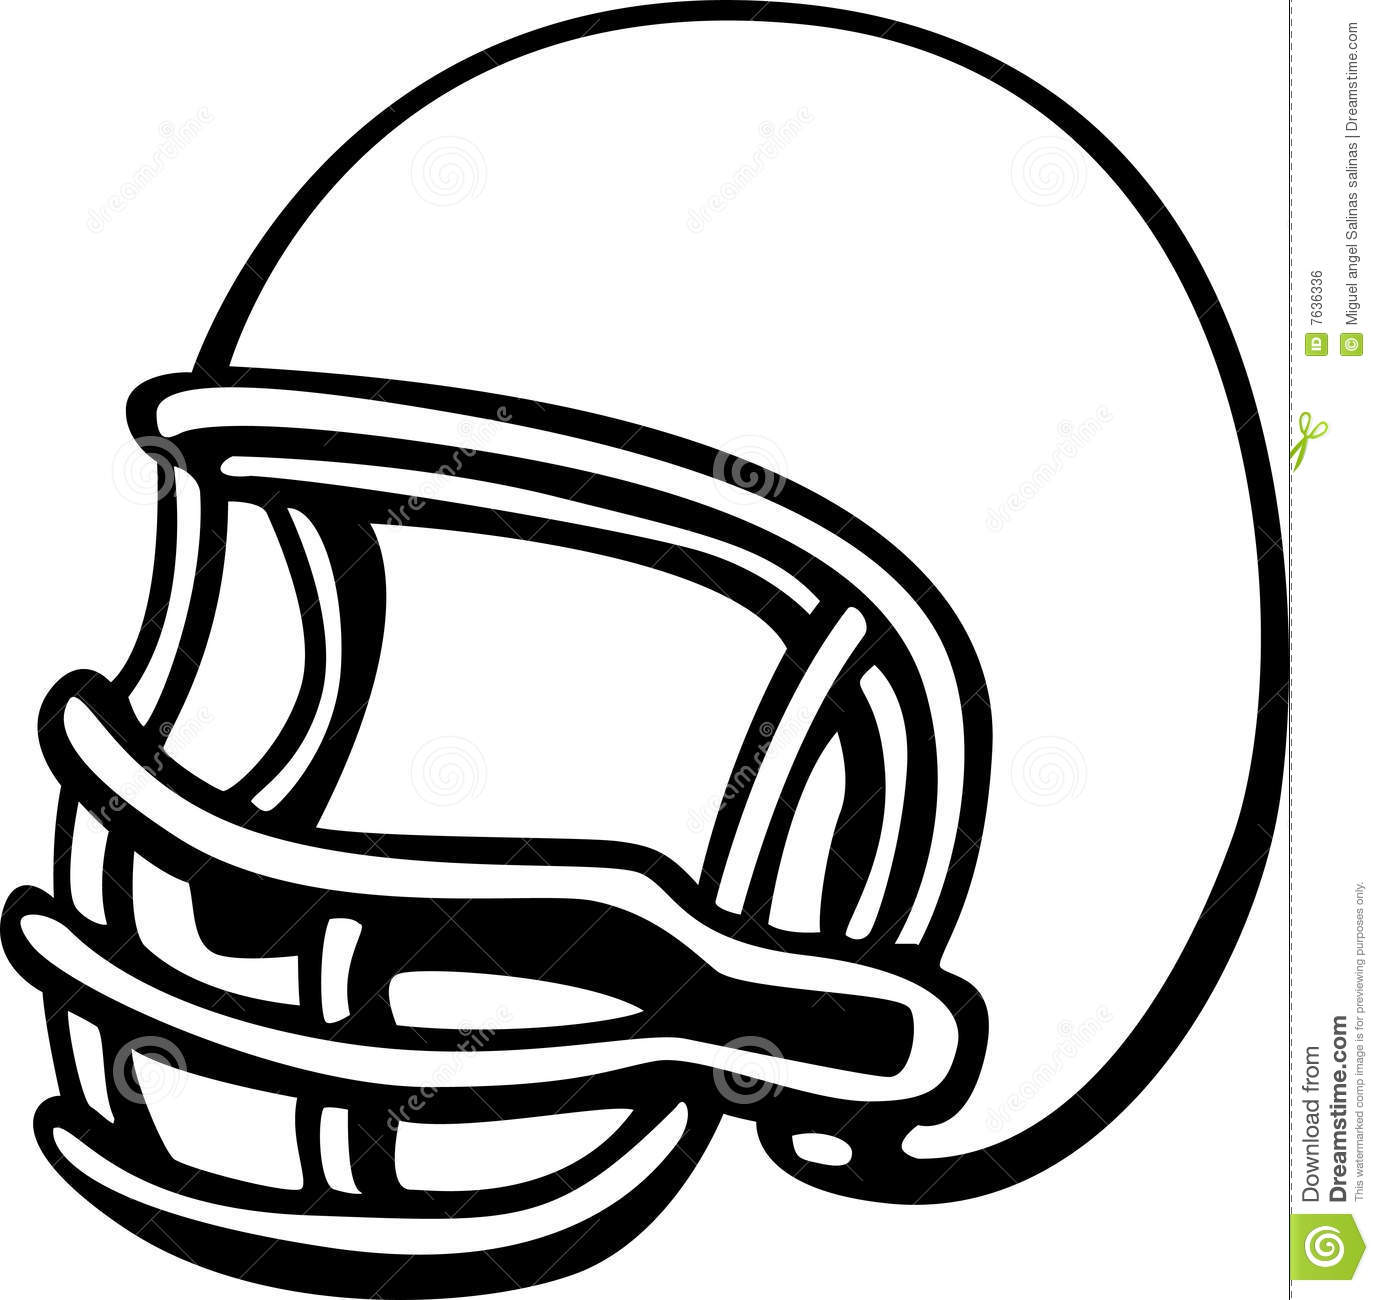 American Football Clipart Black And Whit-American Football Clipart Black And White Football Helmet Vector-6